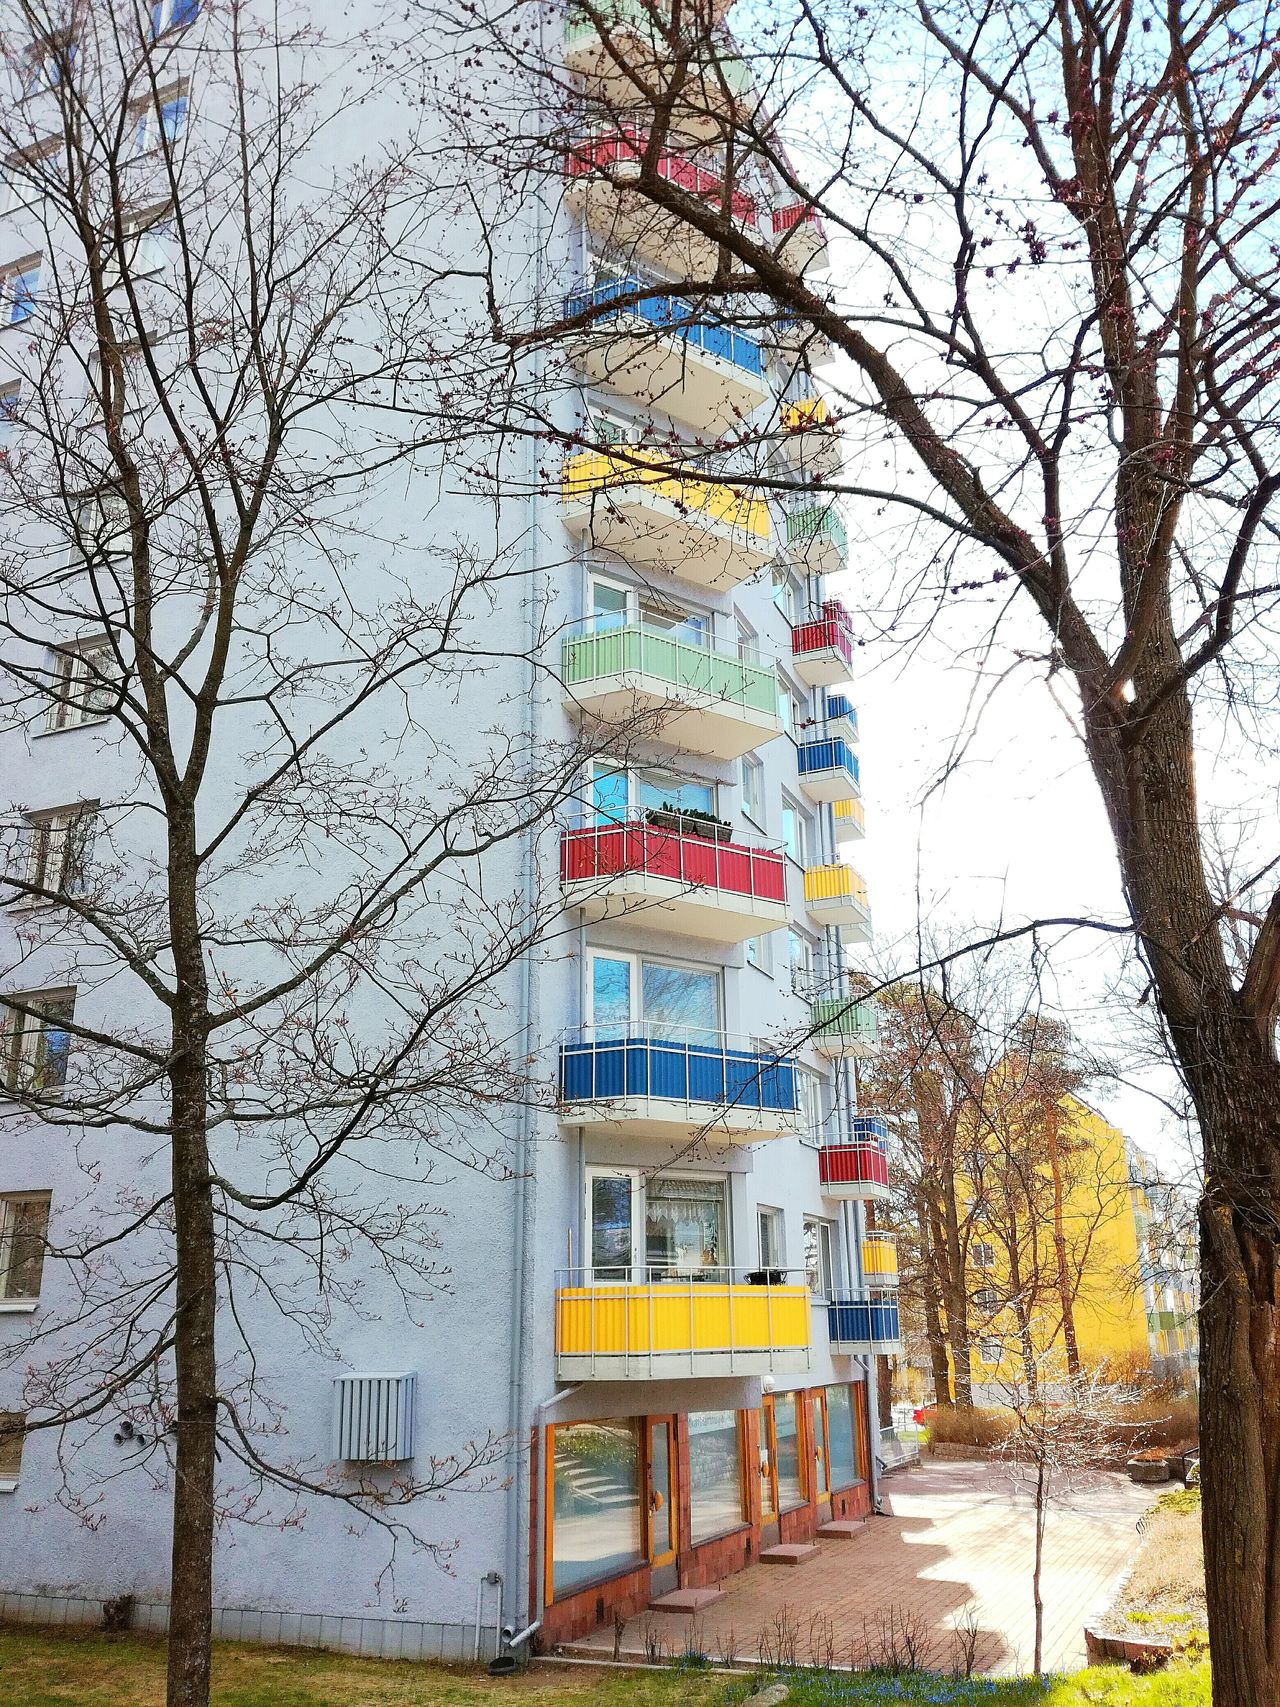 Tree Day Outdoors Built Structure Architecture Sky Branch No People Building Exterior Balconies Colorful Cheerful Block Of Flats City Landscape Sunny Day Colors Colorsplash Doors And Windows Park View Finland Neighborhood Map